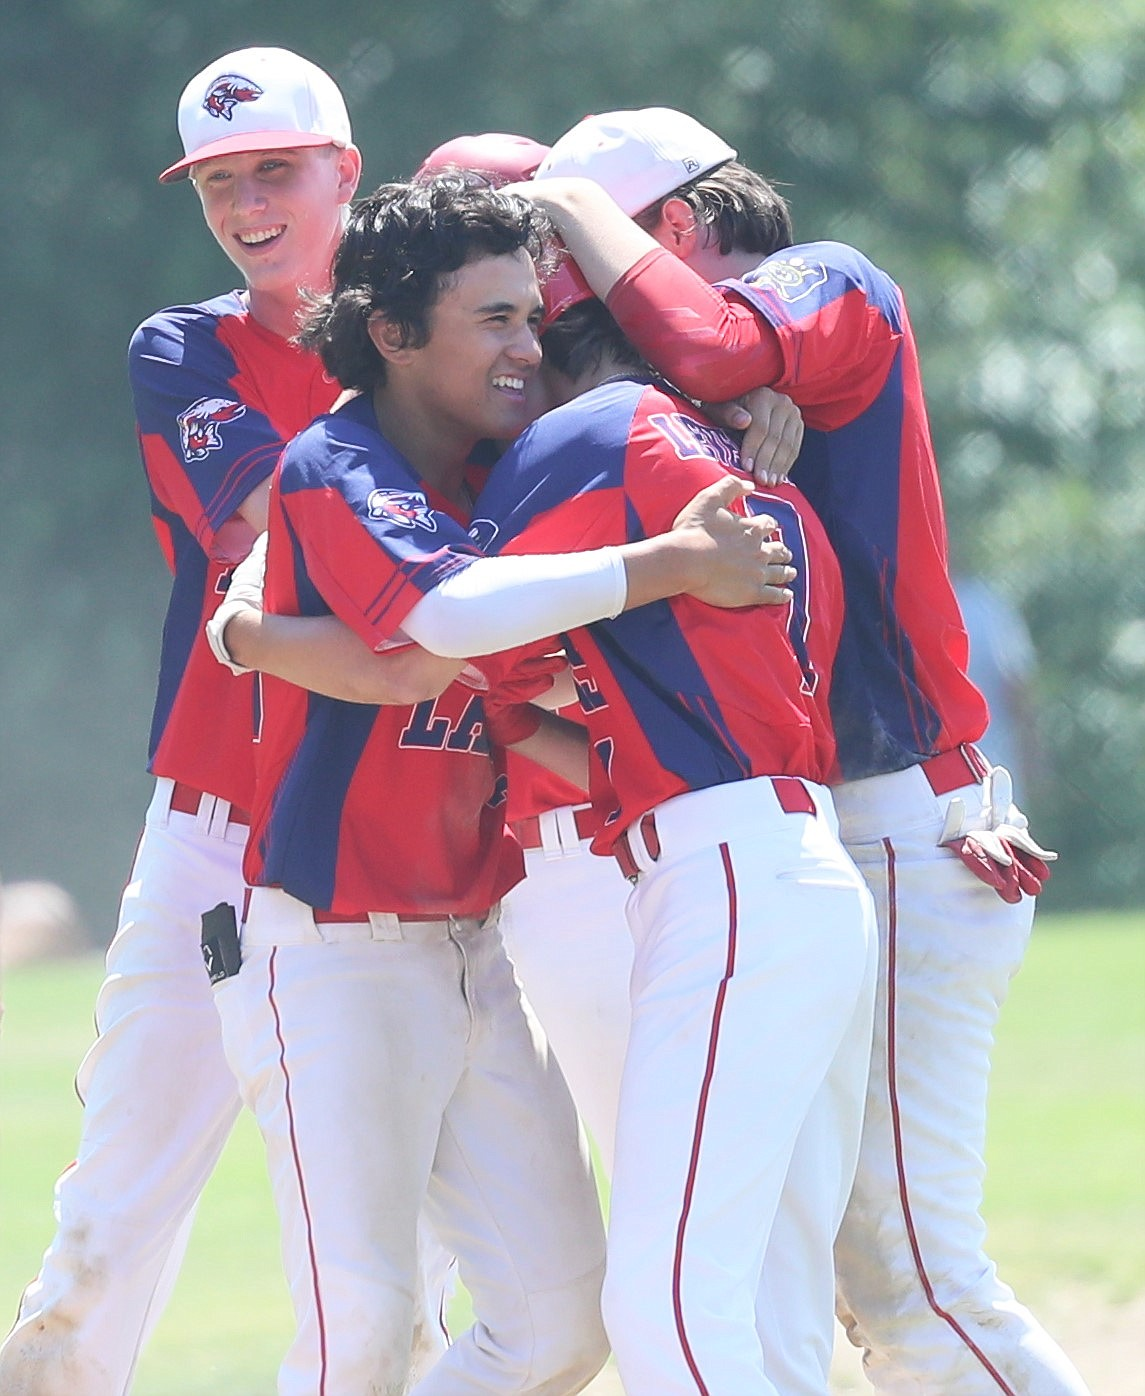 The Lakers swarm Zach Leverich to celebrate his walk-off hit on Friday.